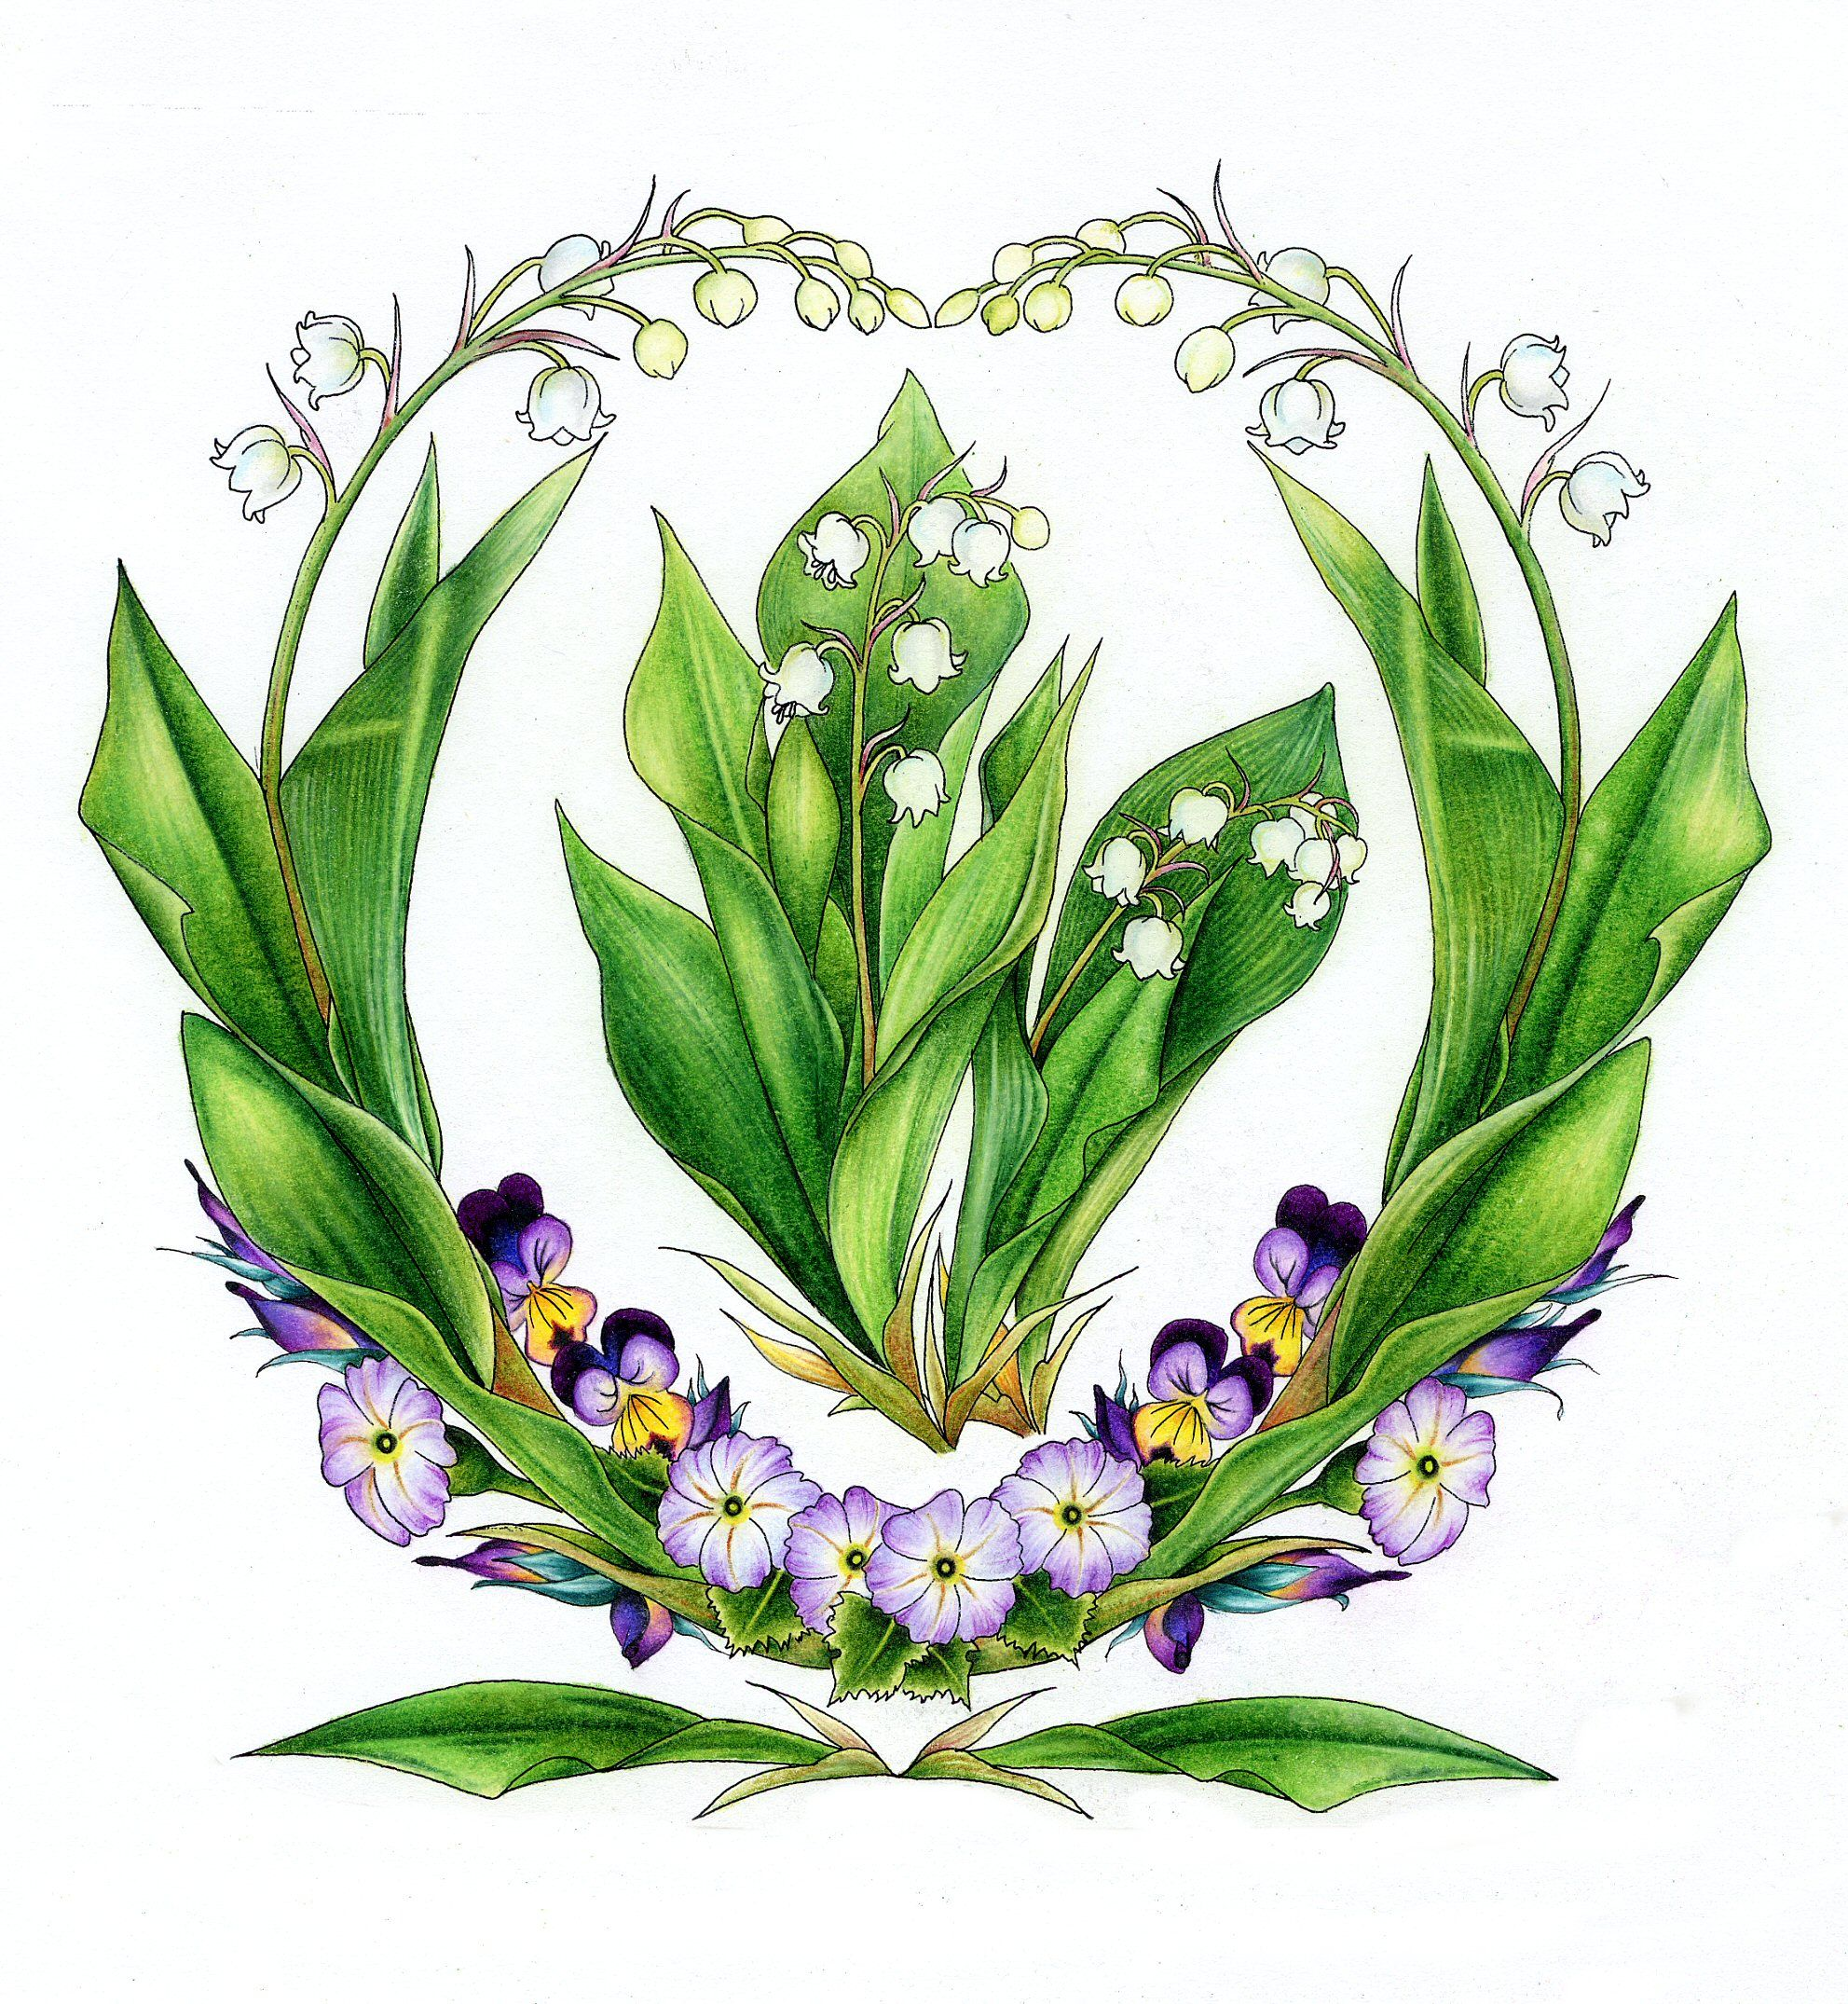 Lily Of The Valley Flower Lily Of The Valley The Meaning Of This